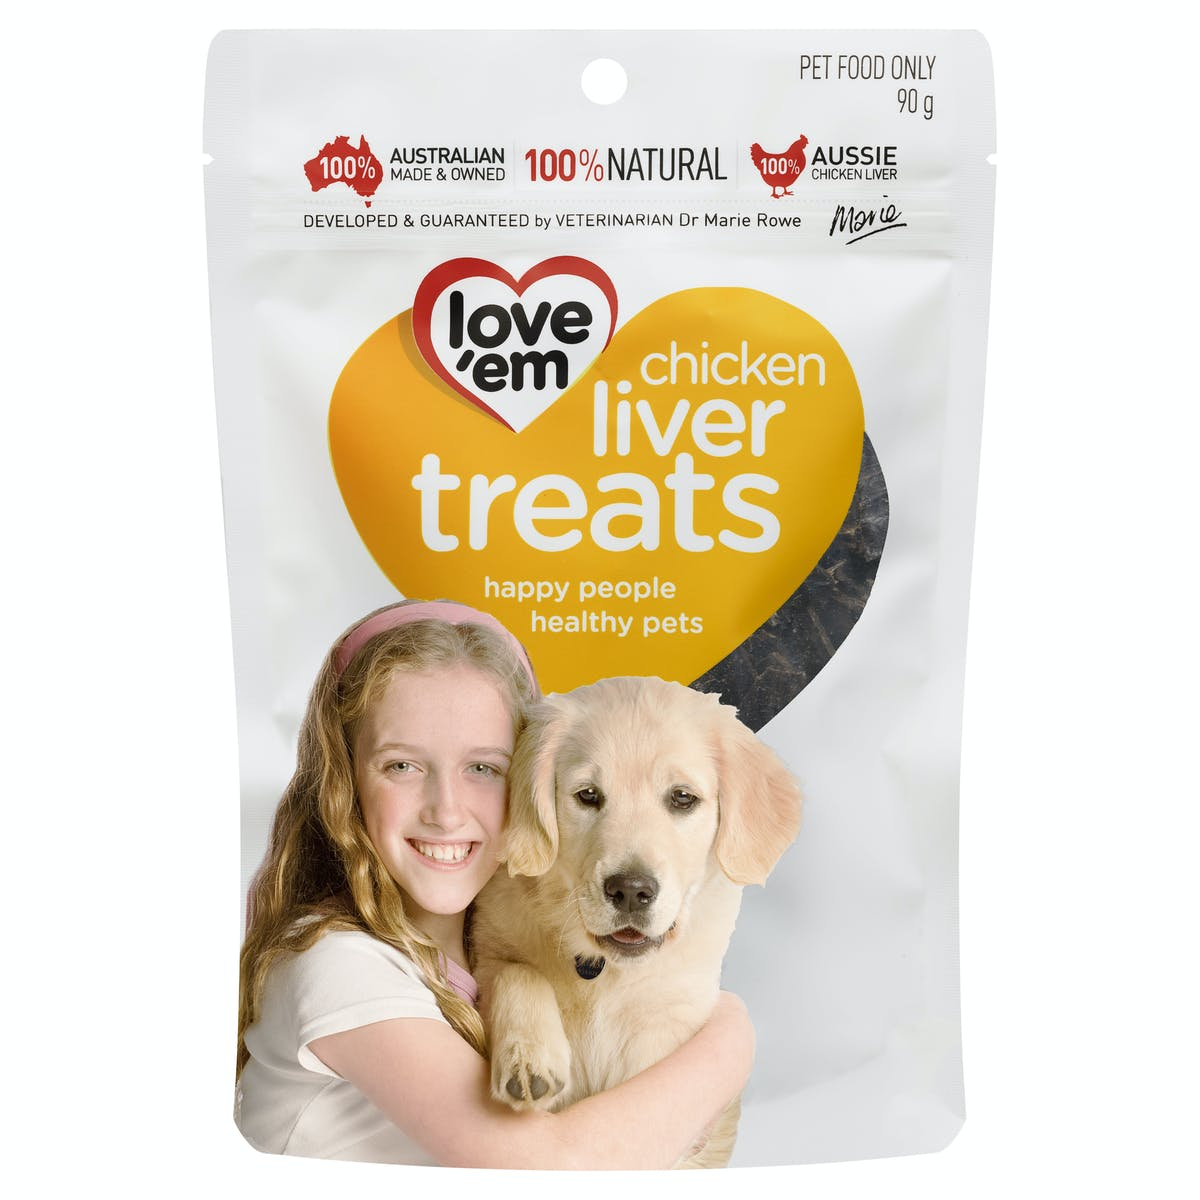 Love'em | chicken liver treats | Indulge dog | Front of pack